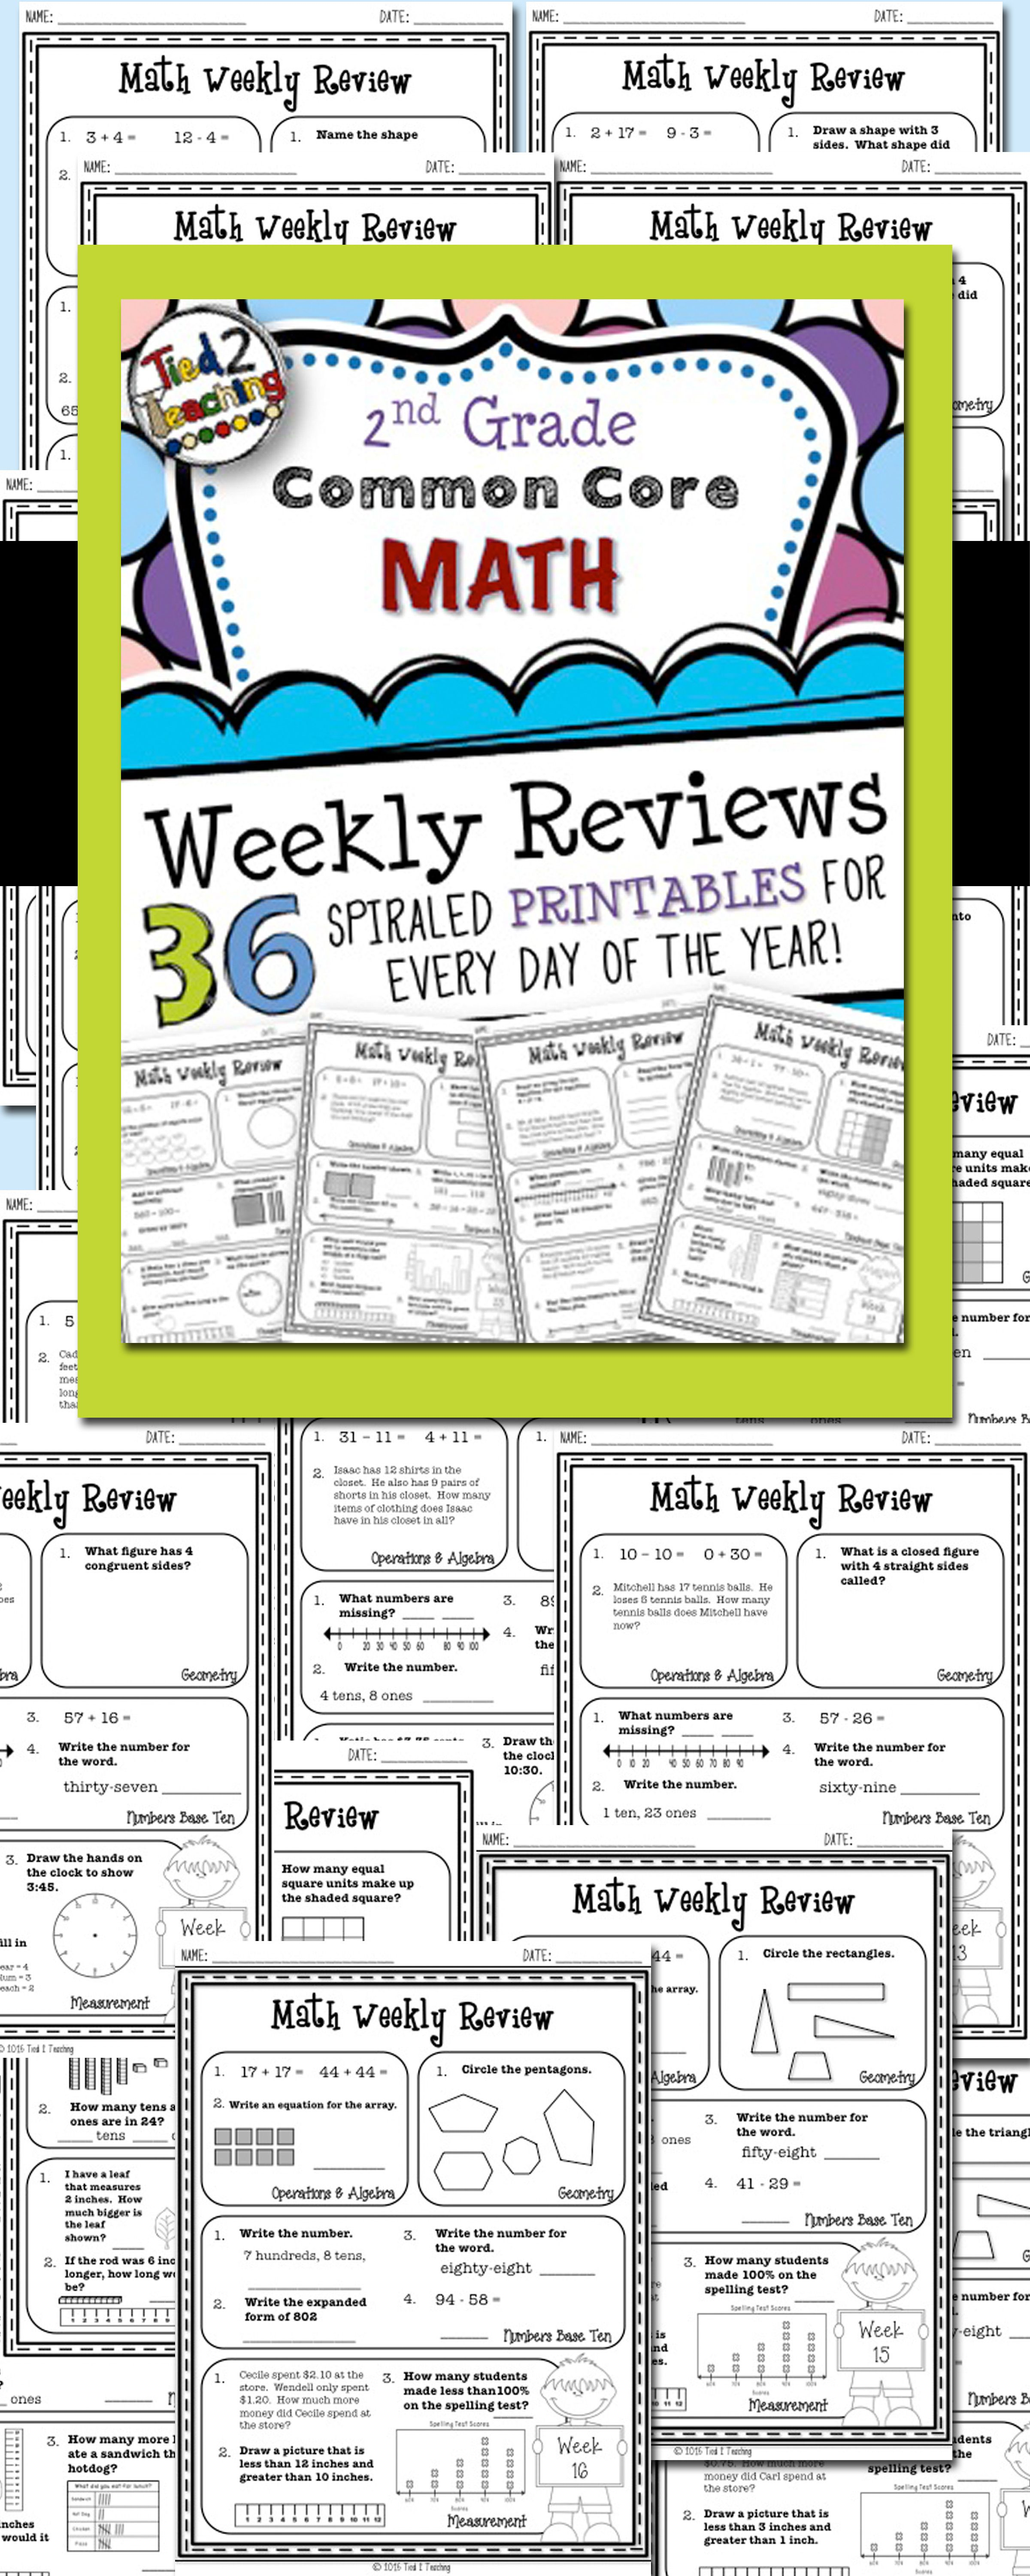 2nd Grade Math Common Core Weekly Review Printables